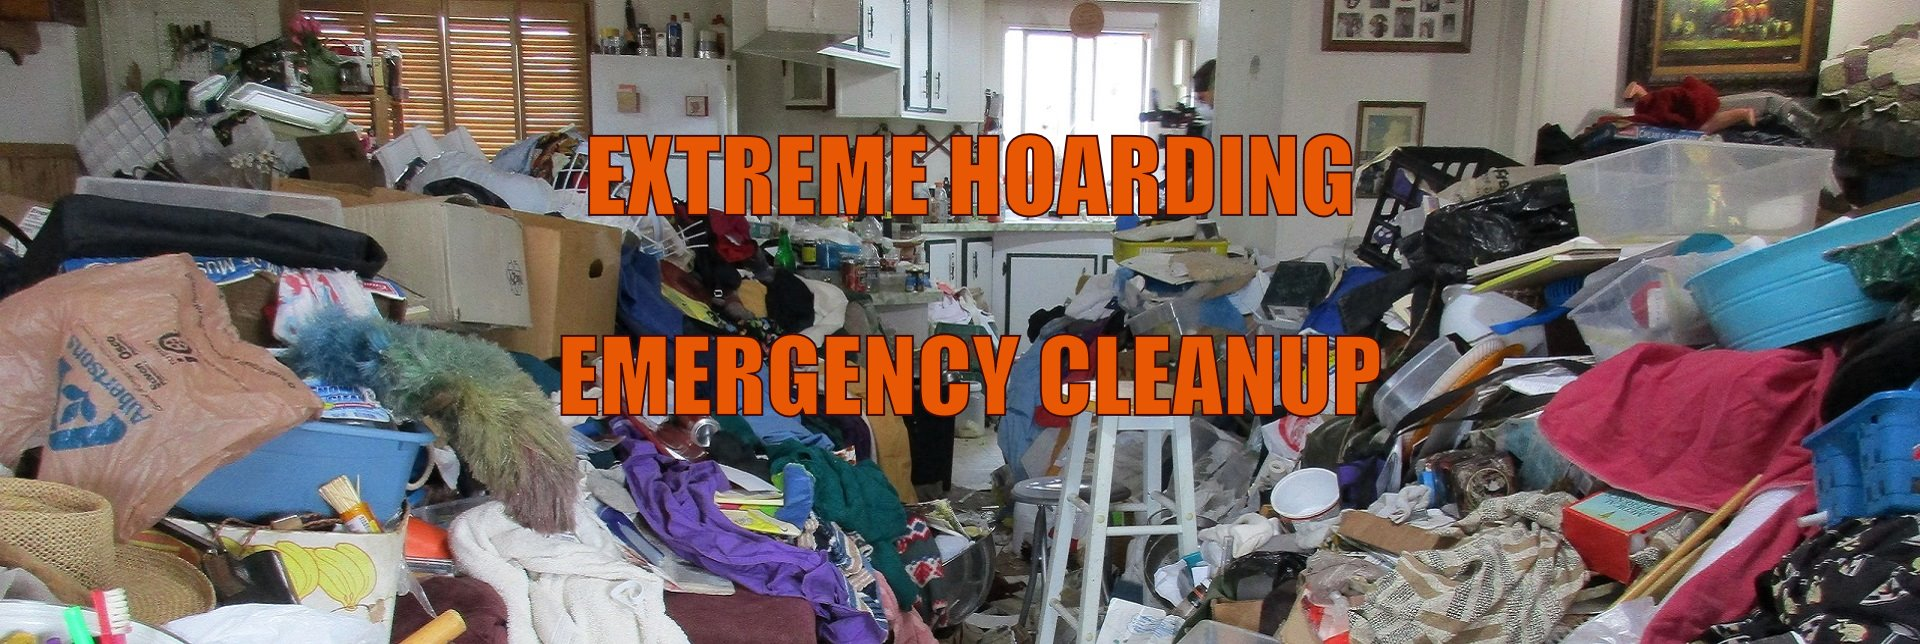 extreme hoarding cleaning London Ontario